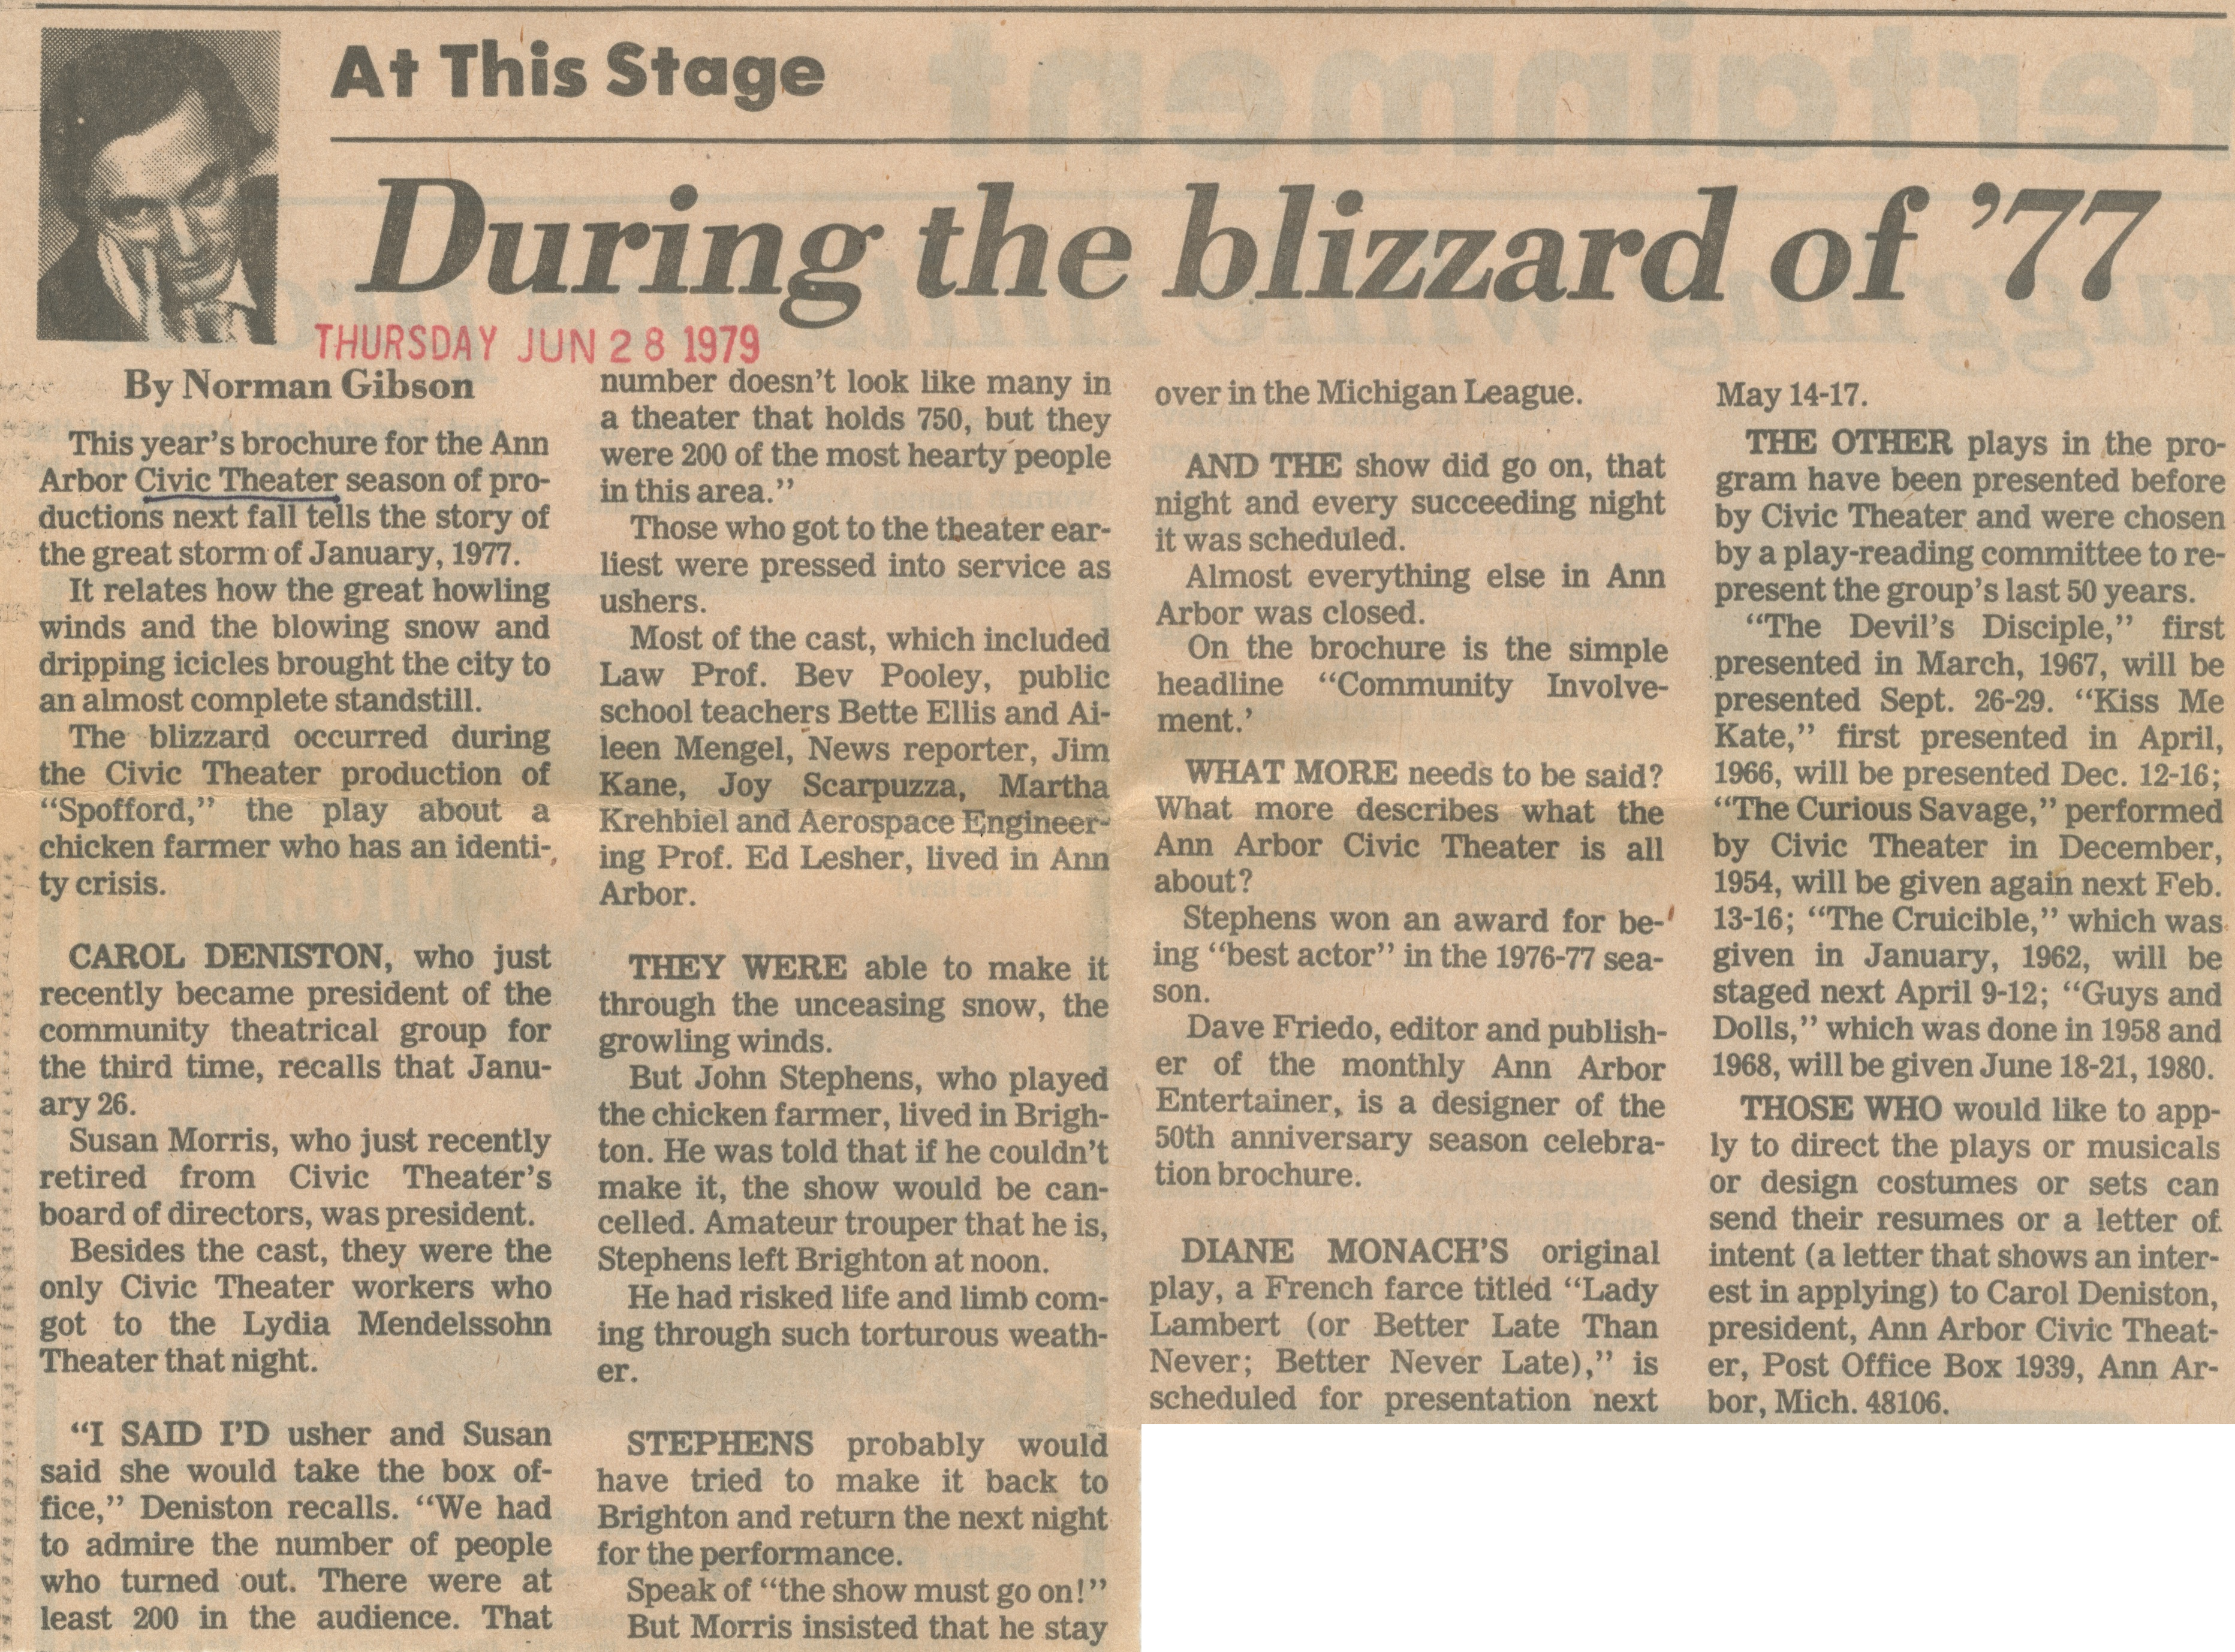 During The Blizzard Of '77 image